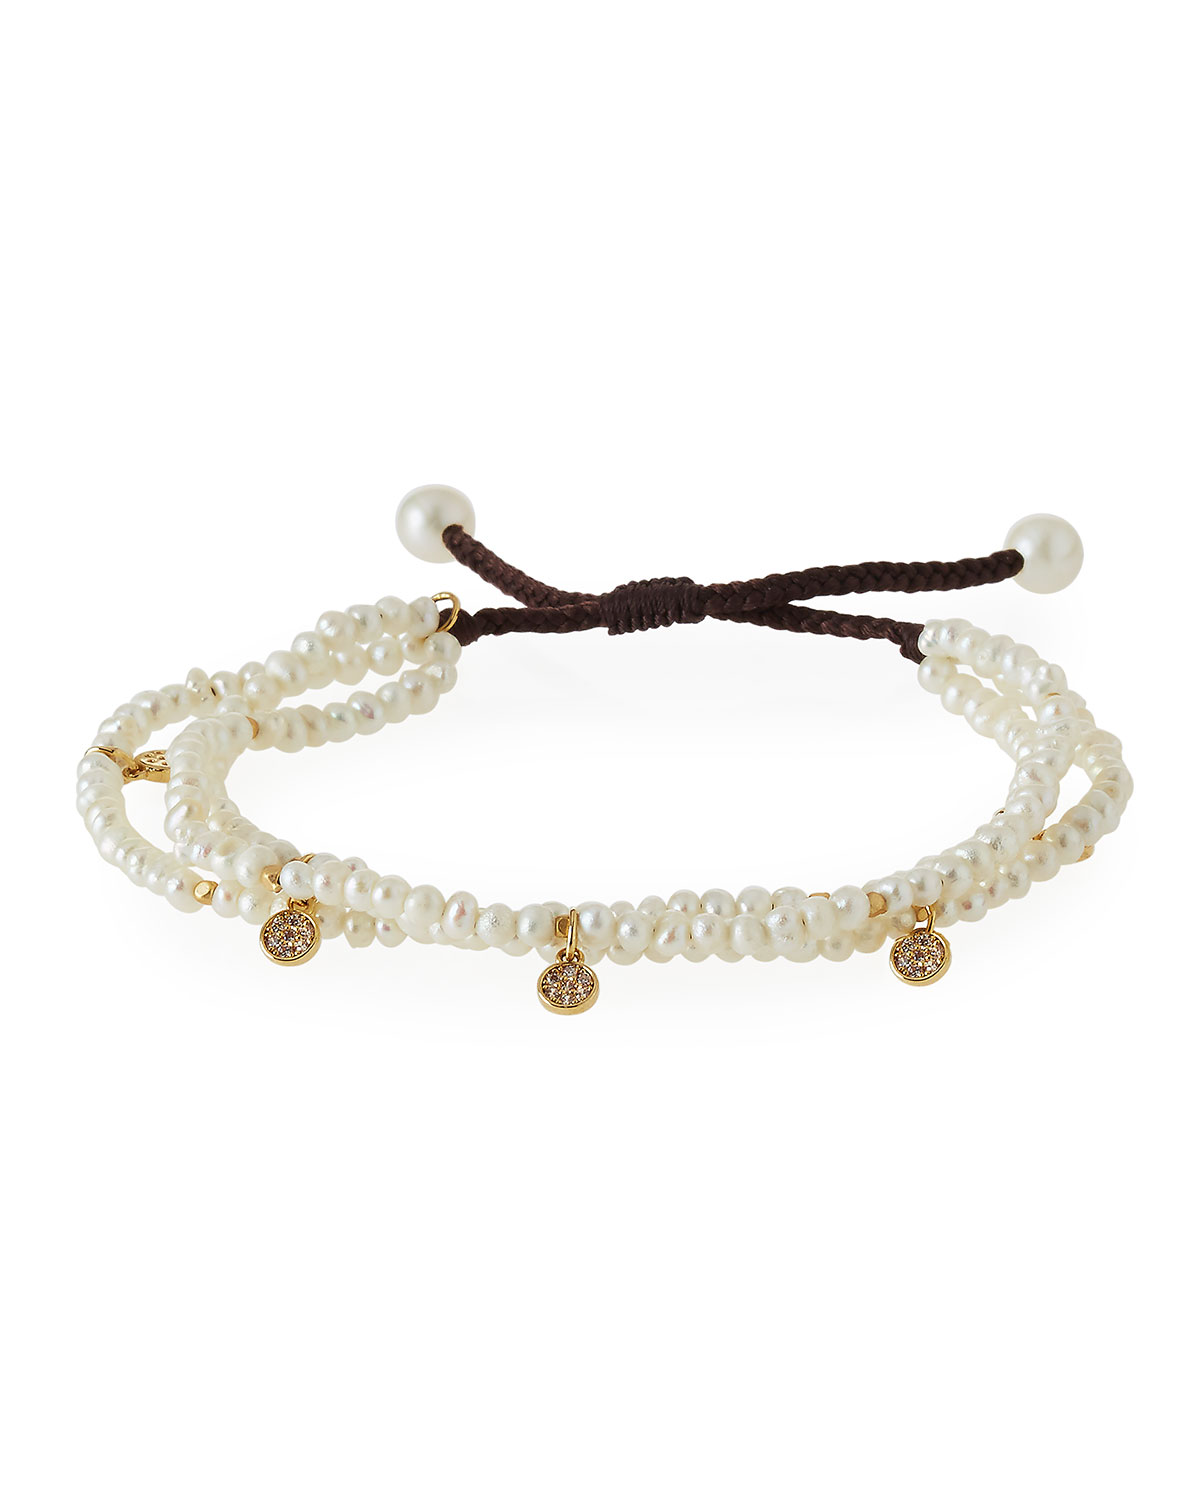 Tai BEADED TWO-STRAND PULL CORD BRACELET WITH PAVE CRYSTAL CHARMS, PEARL WHITE